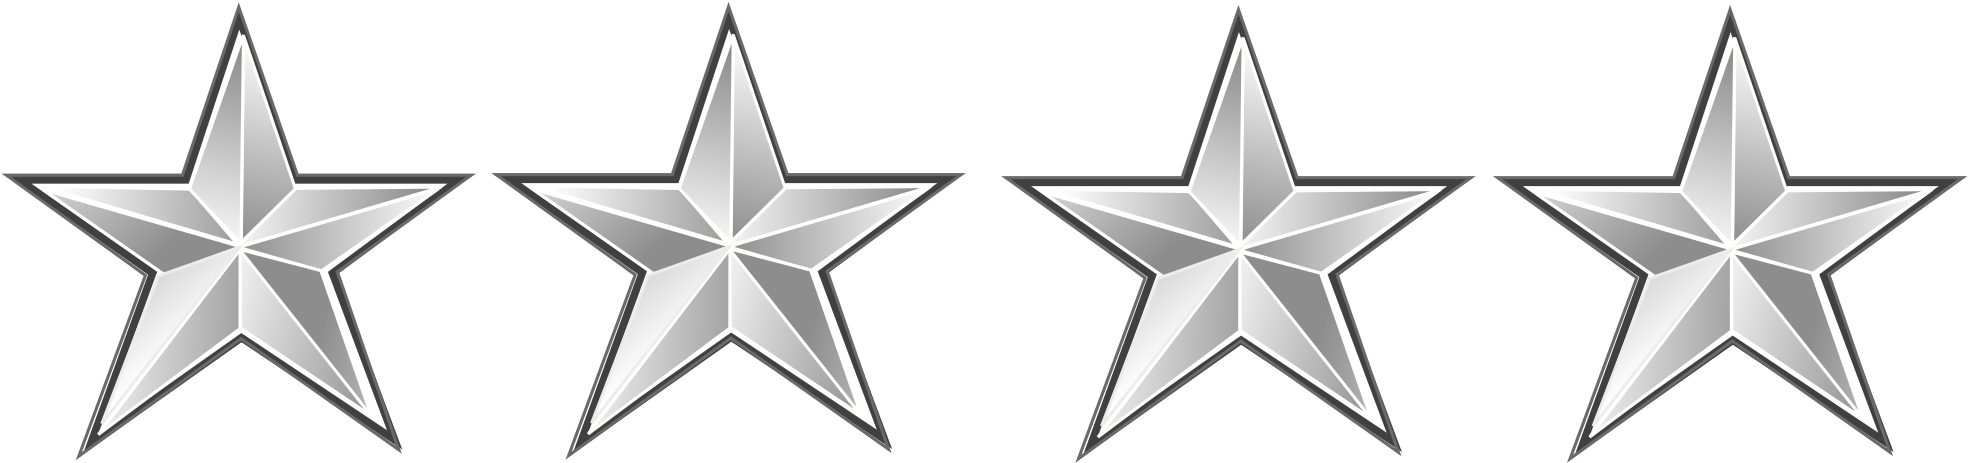 Download star rating image. 4 stars png picture library